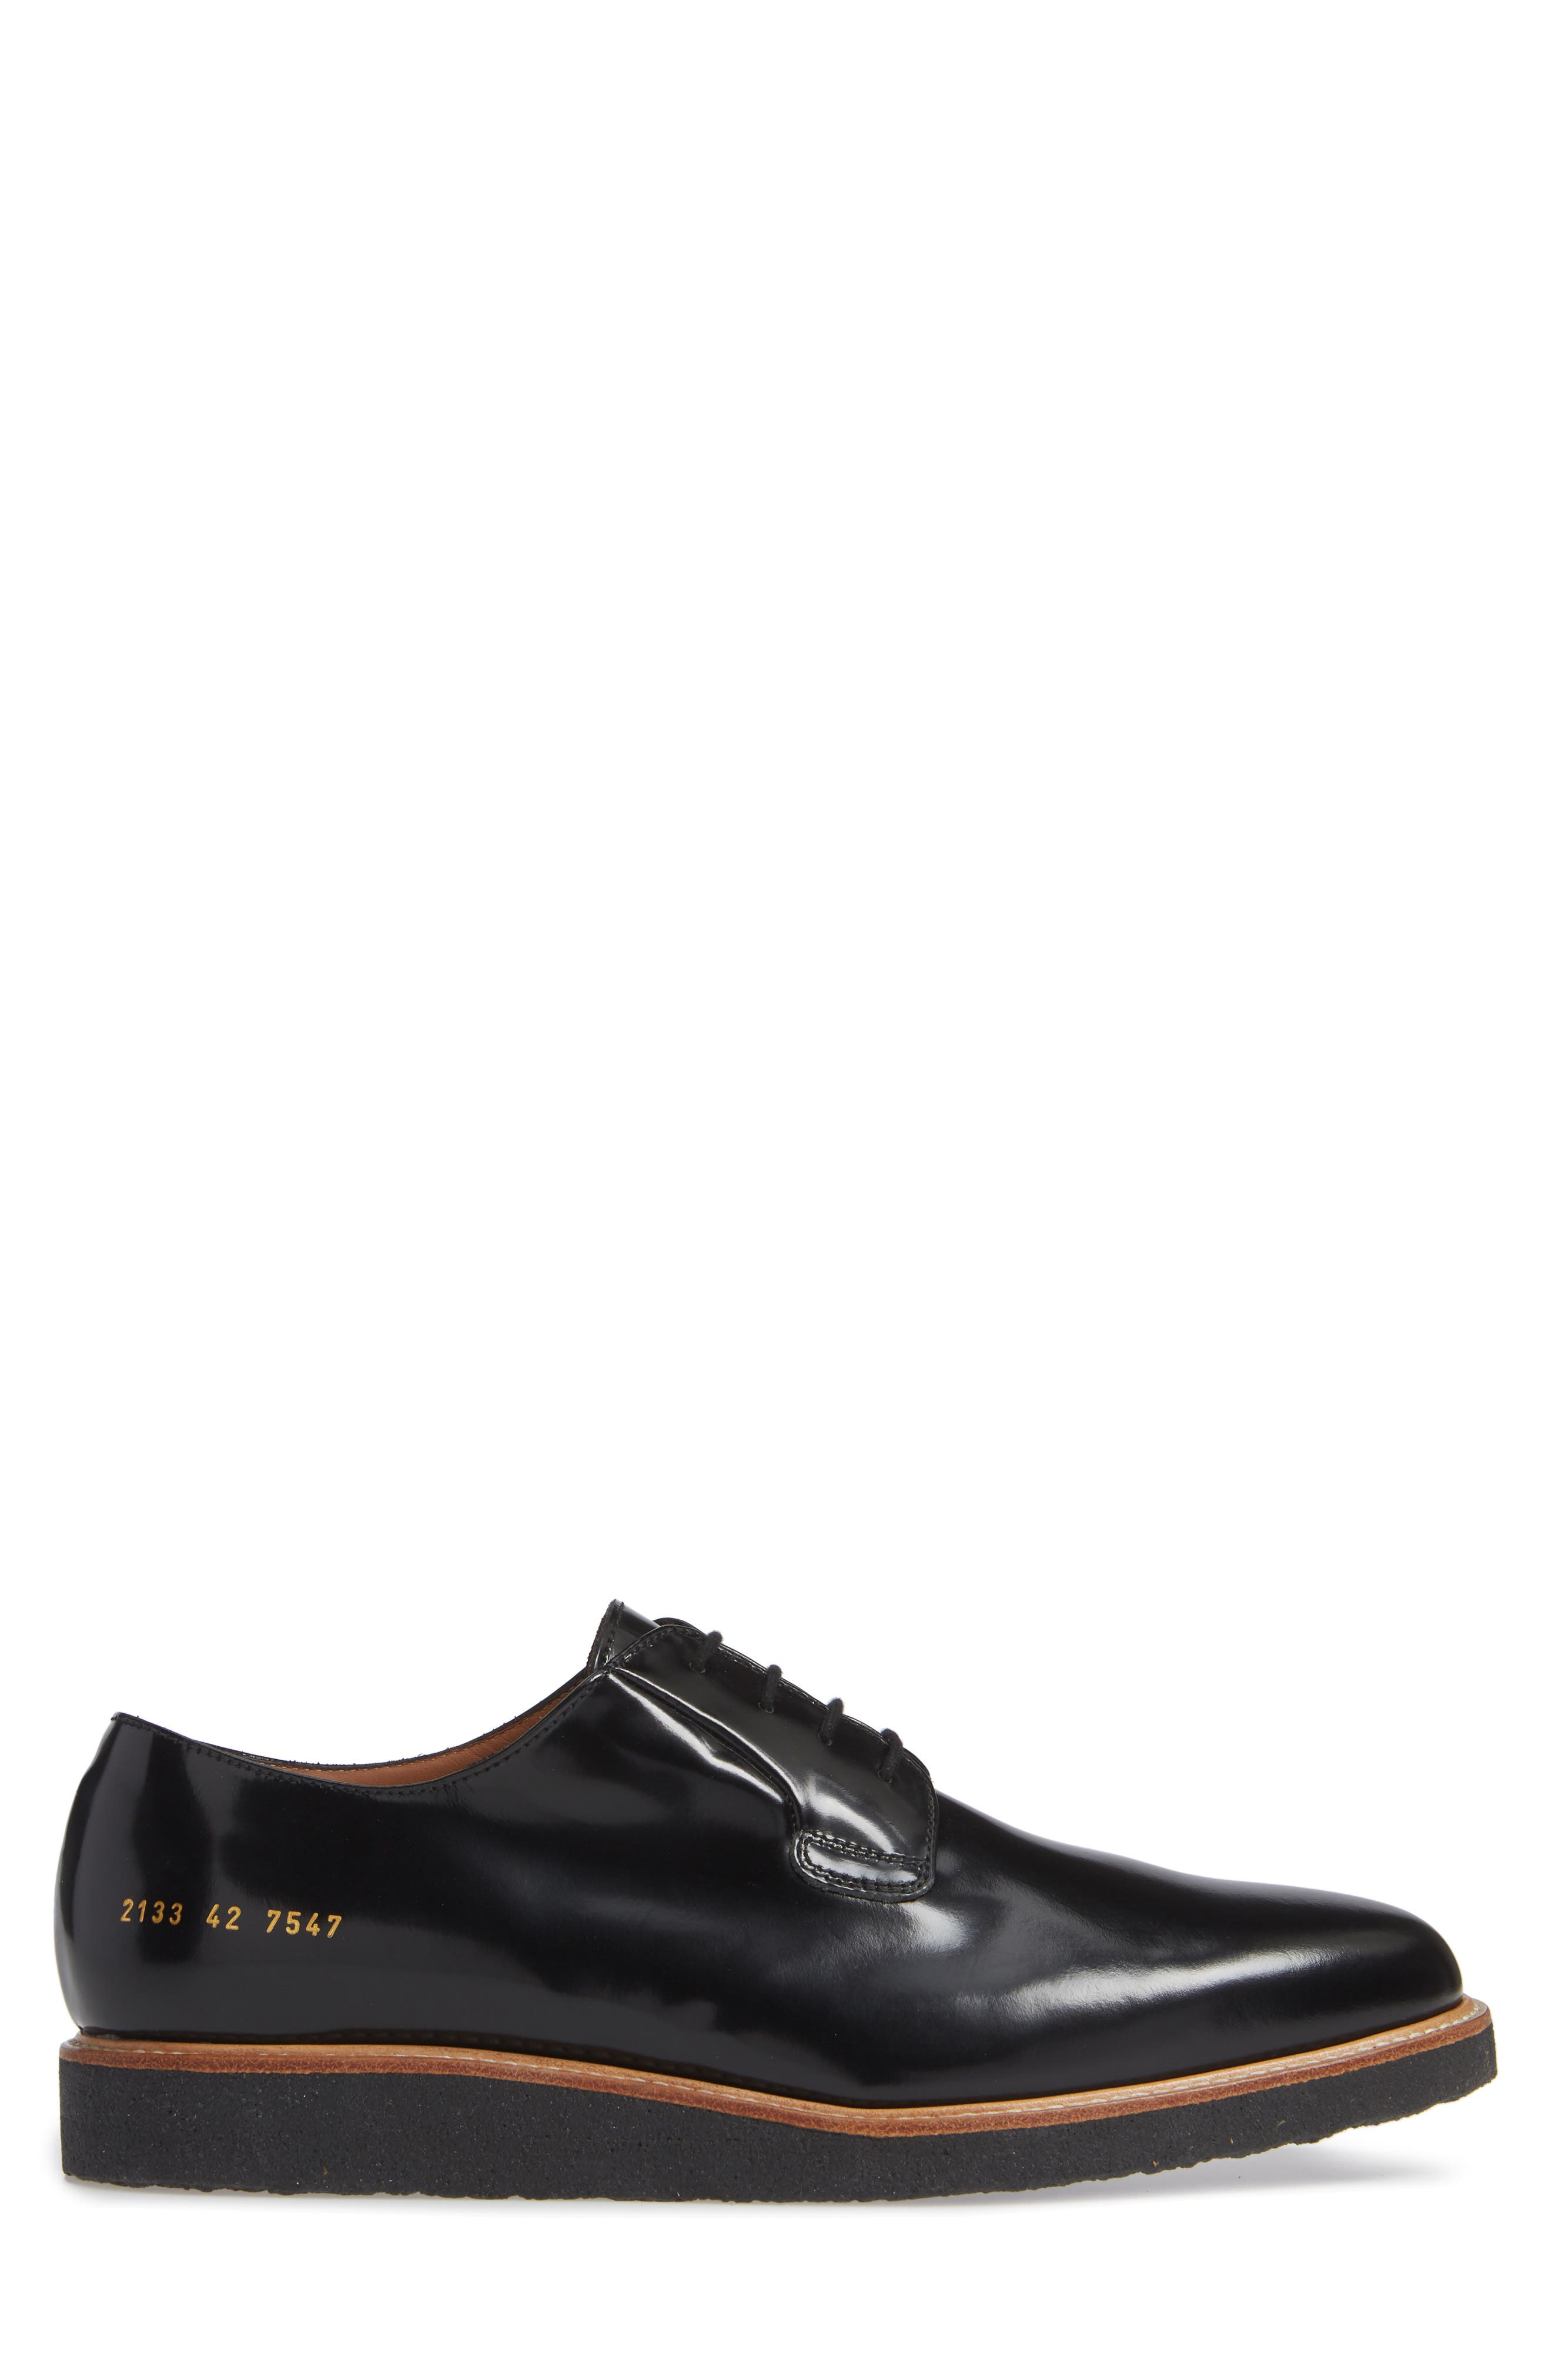 COMMON PROJECTS, Plain Toe Derby, Alternate thumbnail 3, color, BLACK SHINE